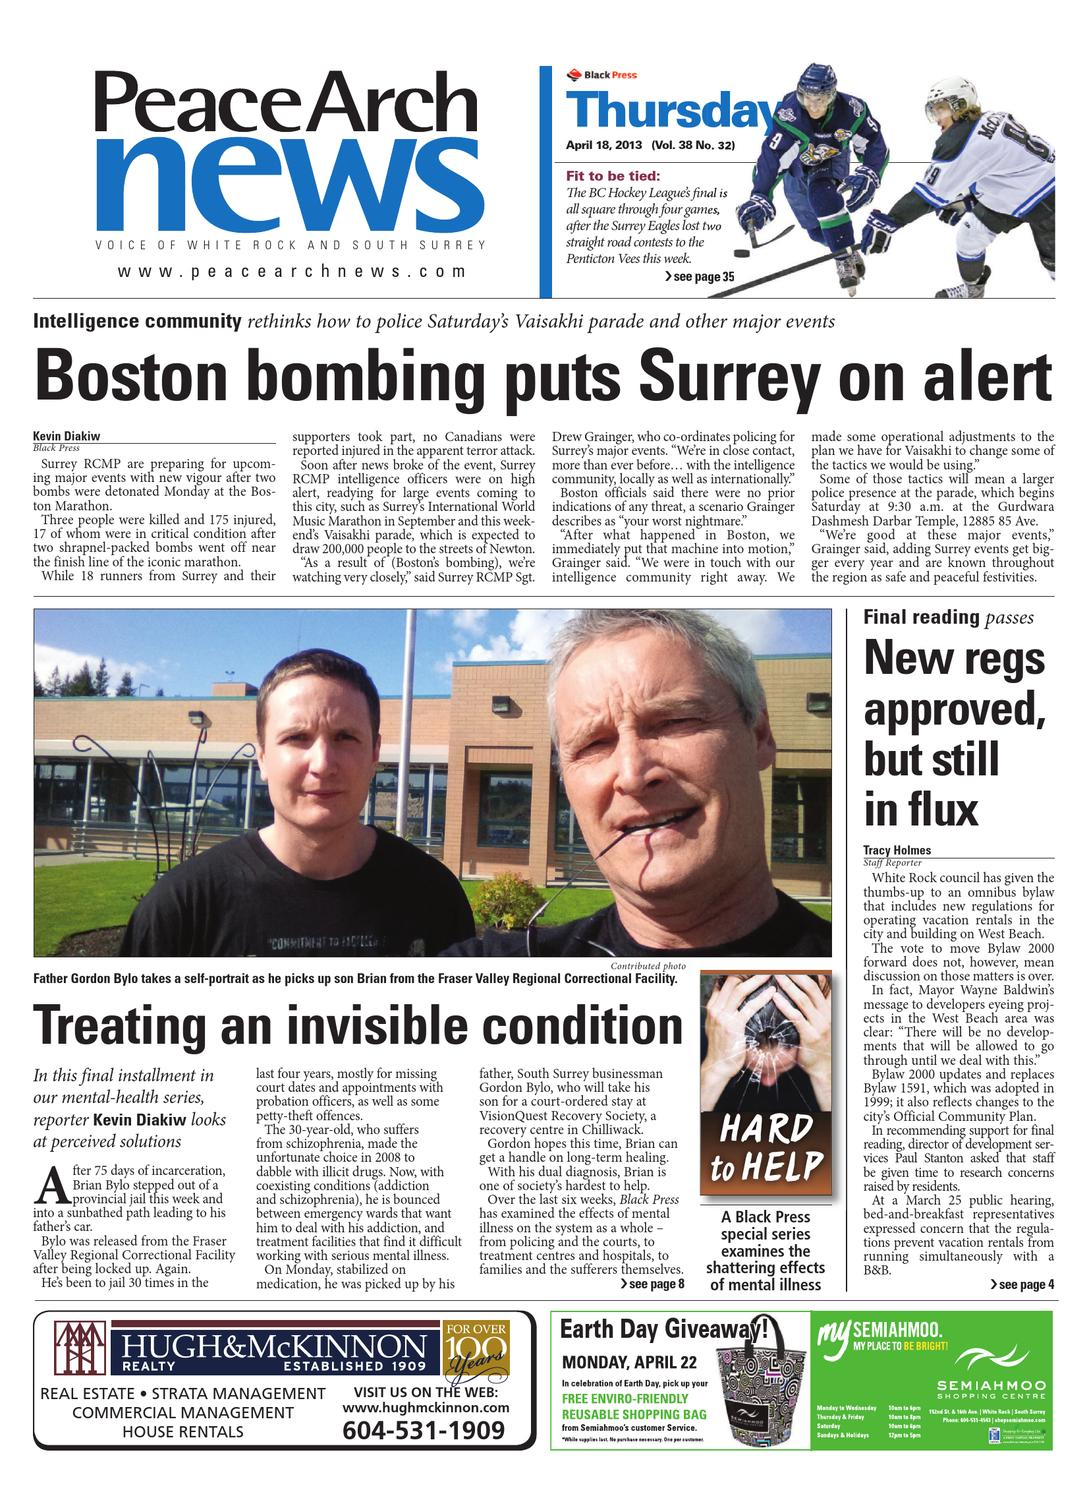 Peace Arch News April 18 2013 By Black Press